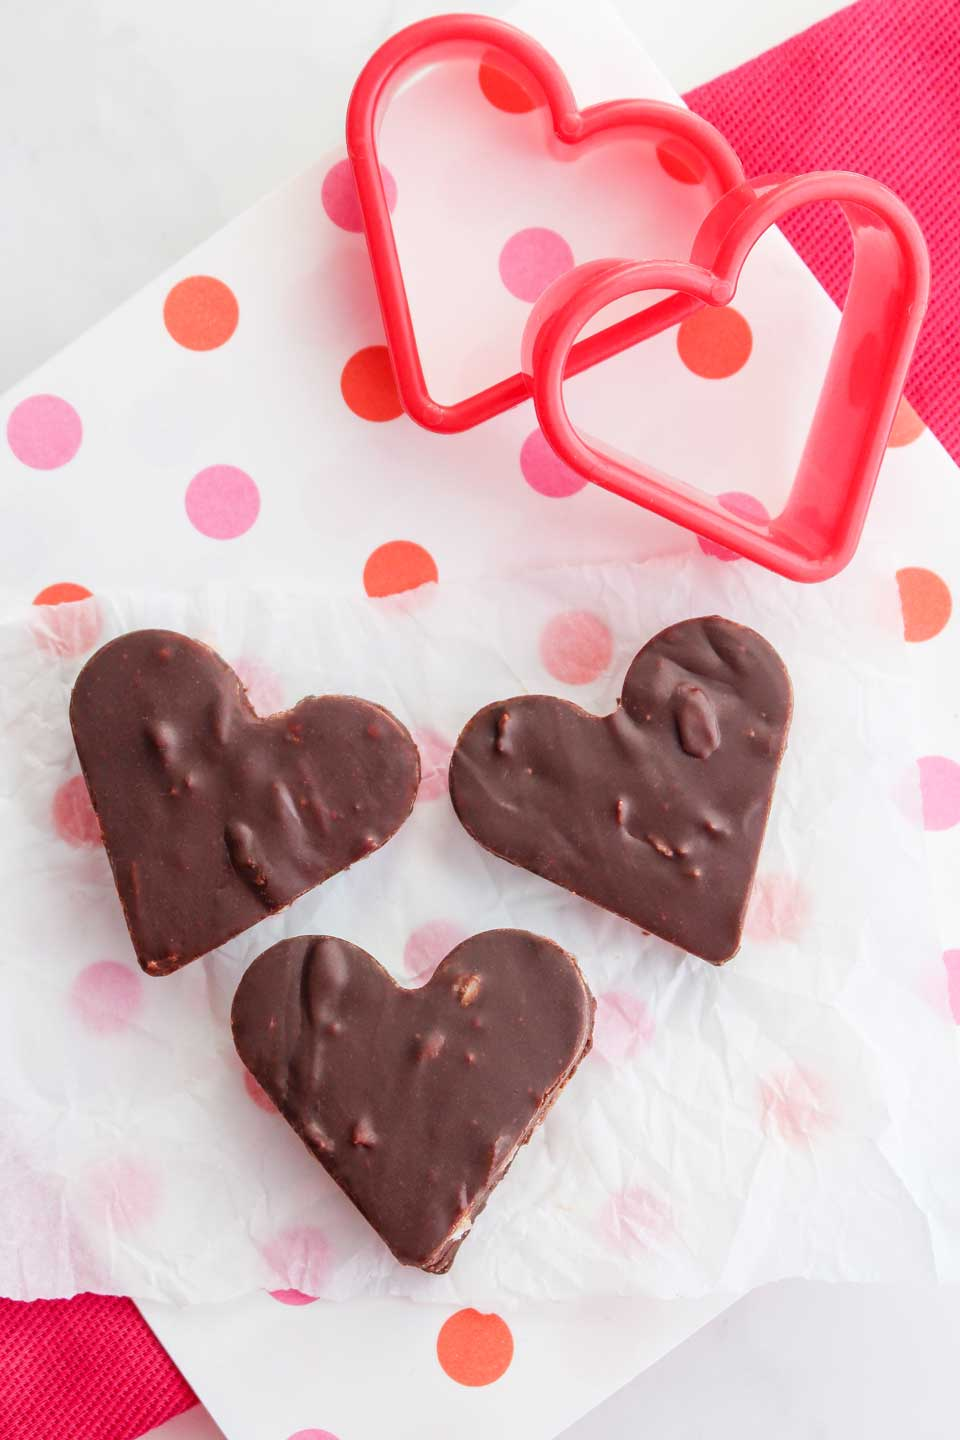 Overhead photo of three fudge hearts, showing how you can easy fudge recipe without condensed milk and, once it has set, cut it into heart shapes with cooke cutters for Valentine's Day.